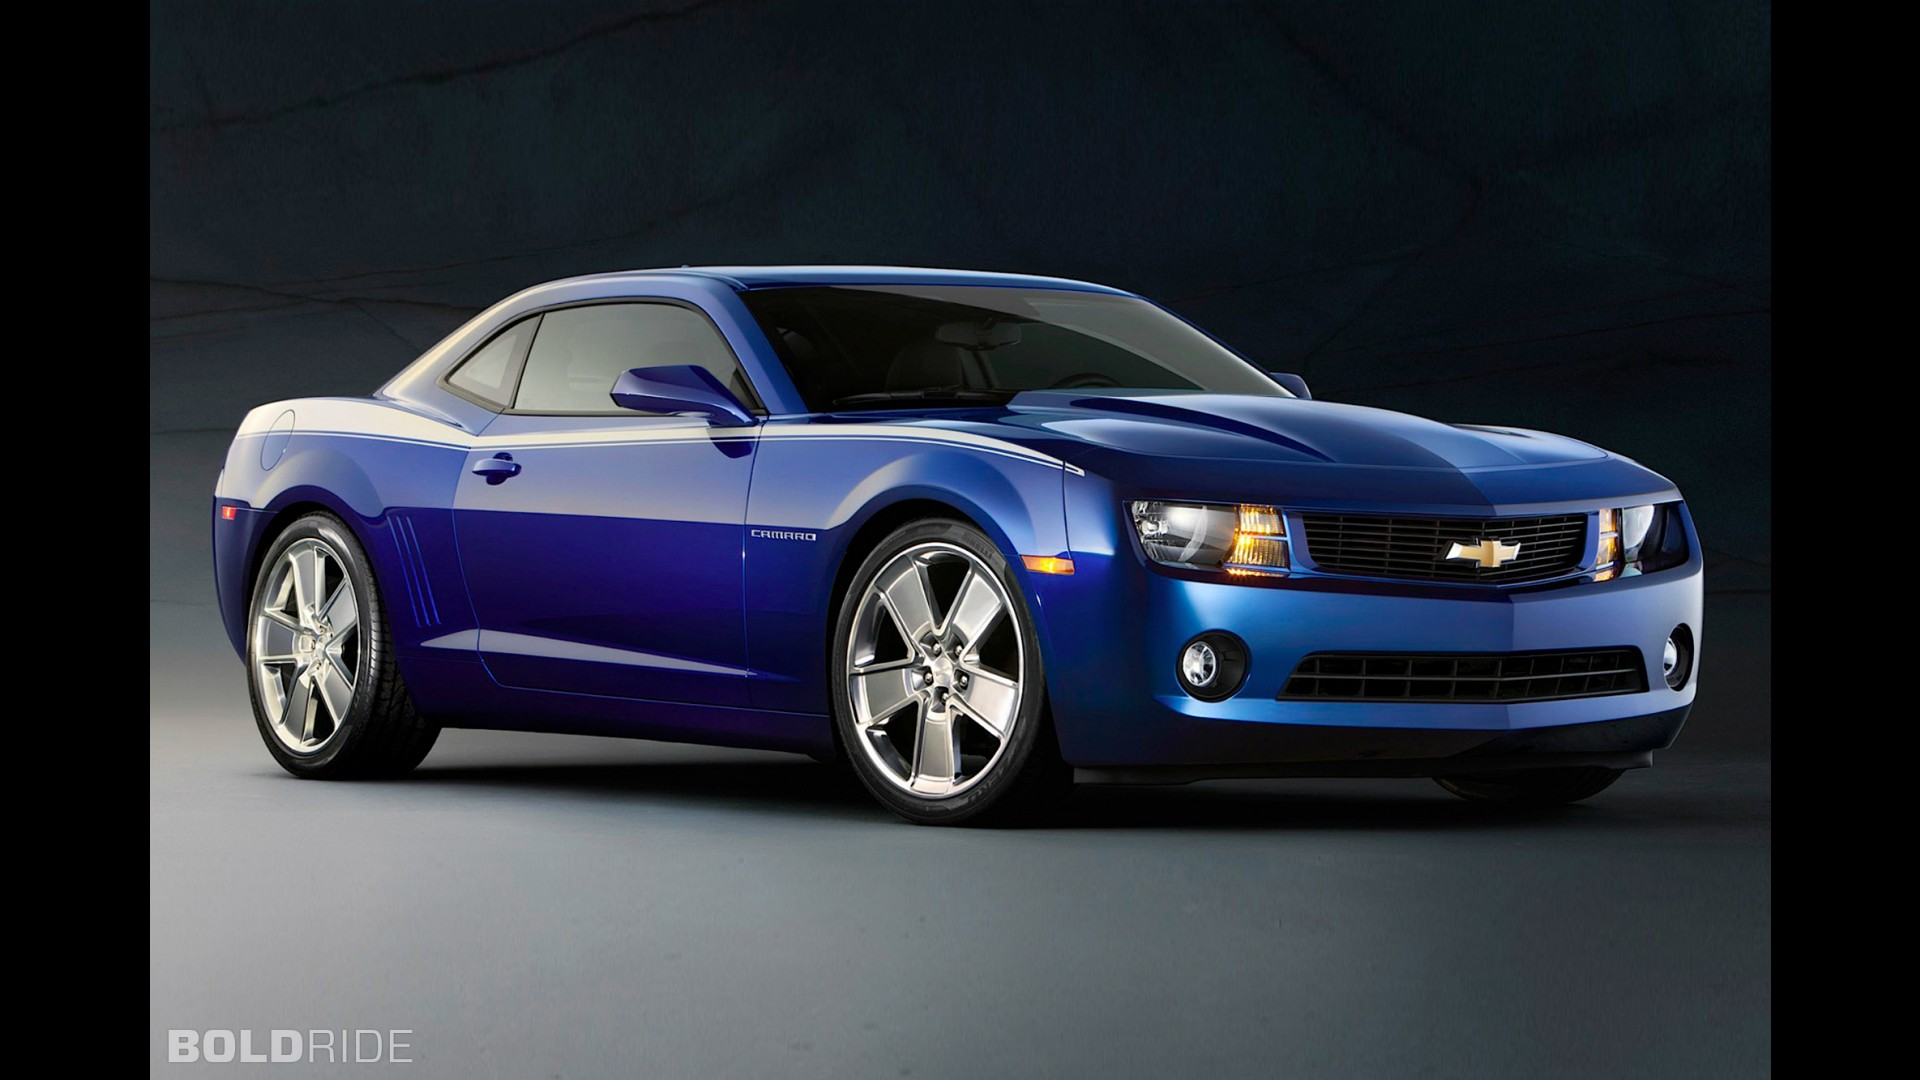 Chevrolet Camaro XM Accessory Appearance Package